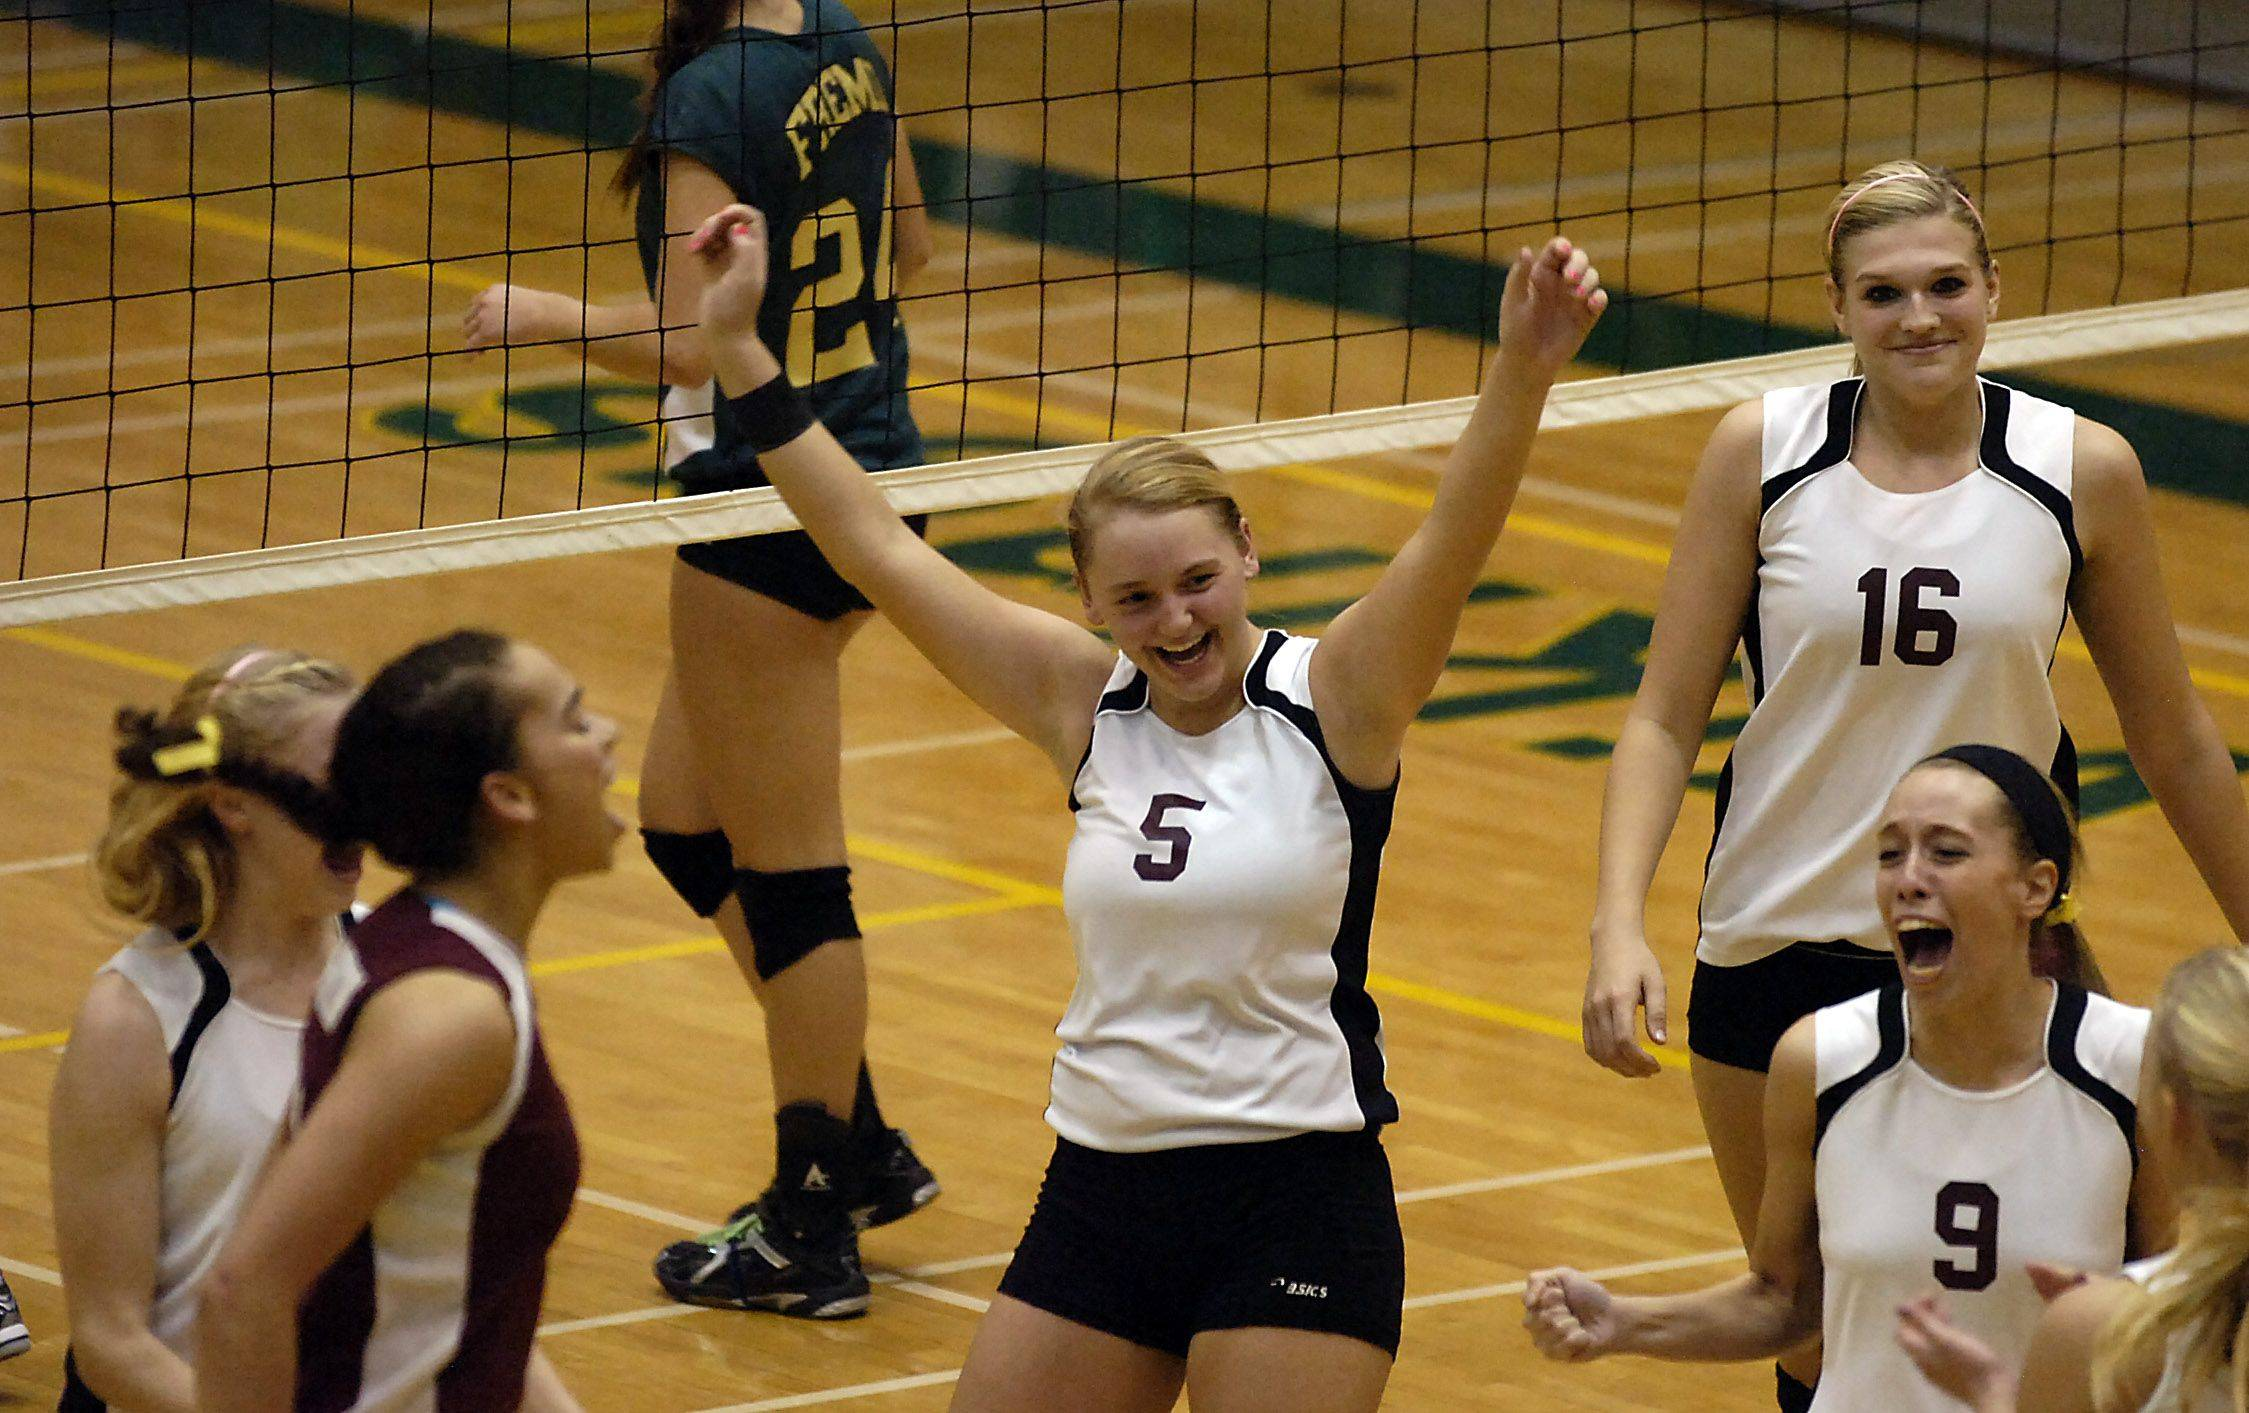 Zion-Benton's Torie Pasiewicz celebrates with her teammates after beating Fremd in game three of the girls volleyball regional semifinals at Fremd High School on Thursday.